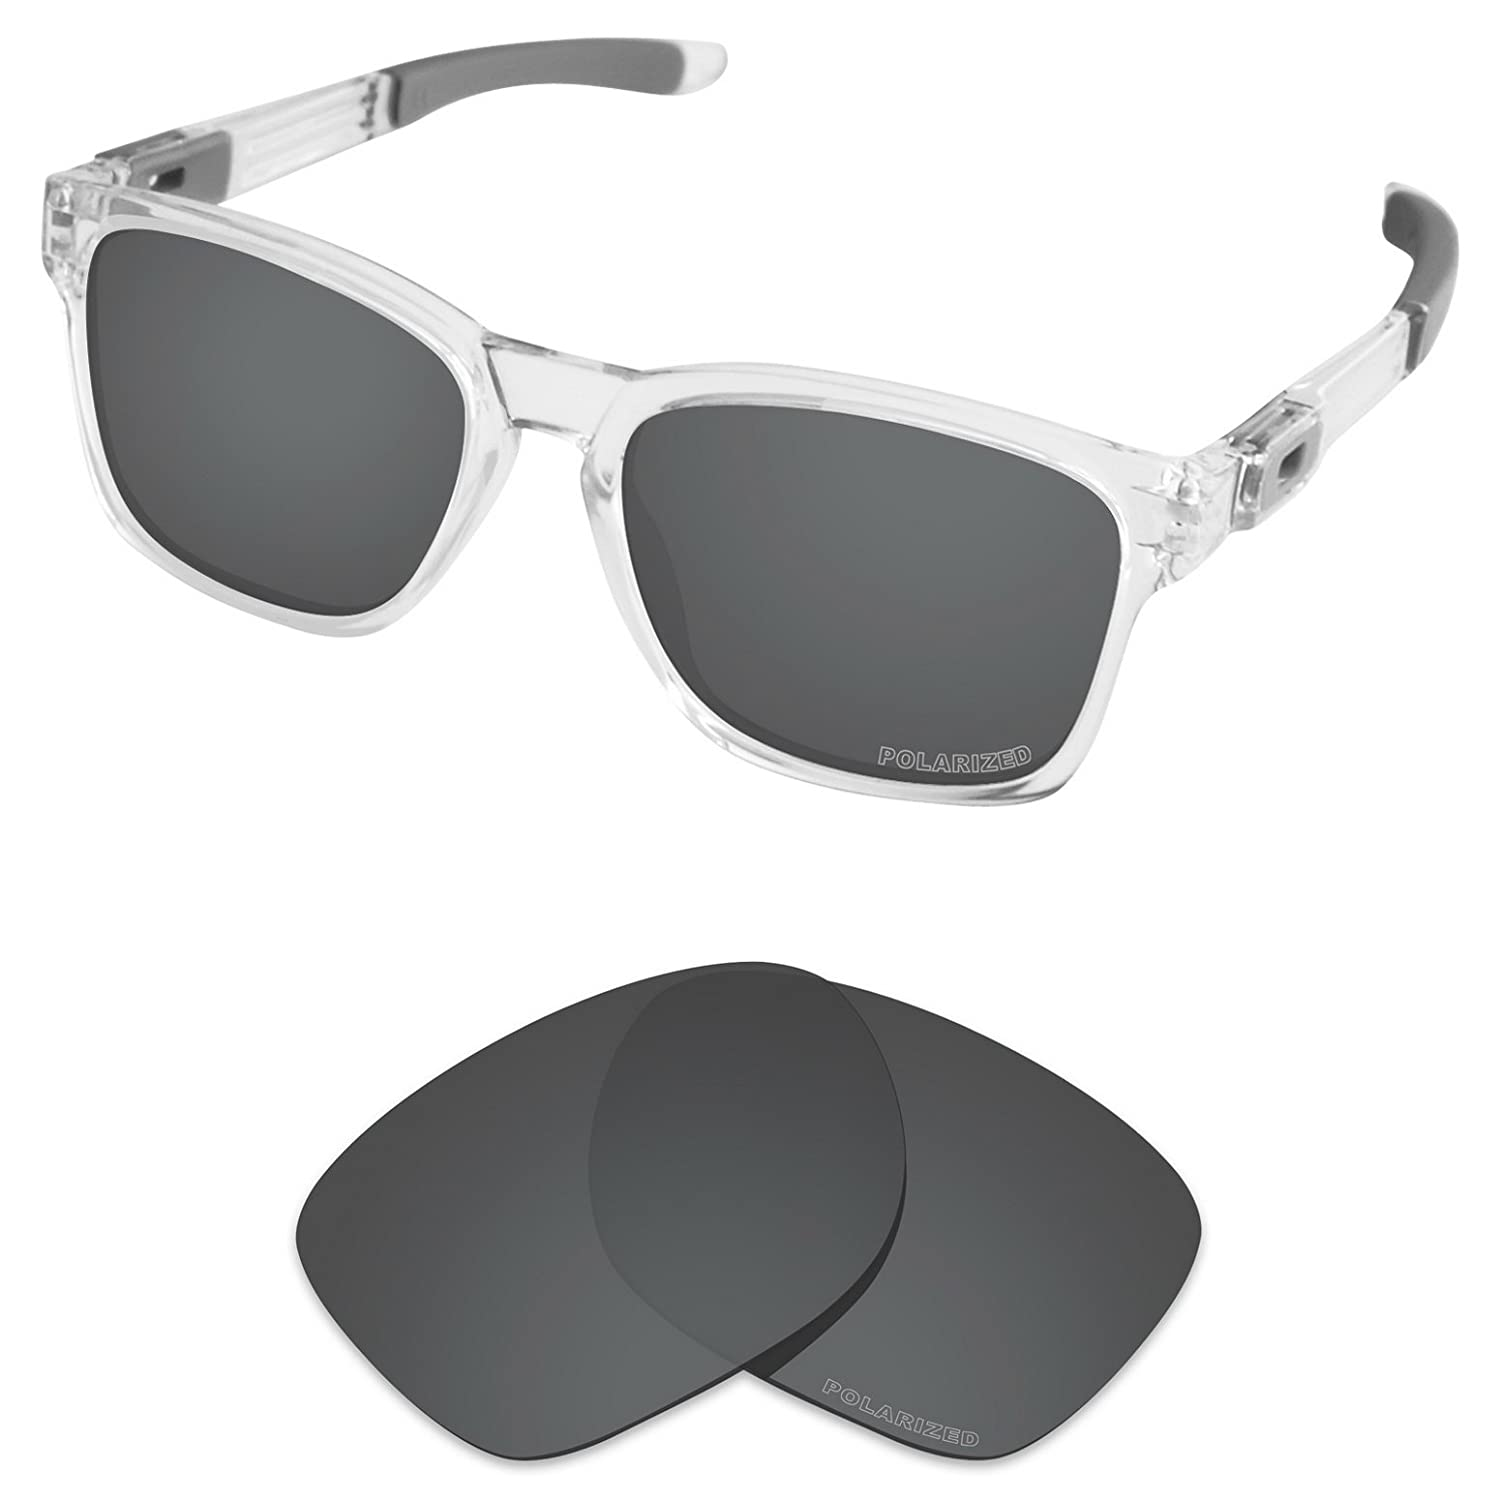 3d963e6fb4e Amazon.com  Tintart Performance Lenses Compatible with Oakley Catalyst  Polarized Etched-Carbon Black  Clothing